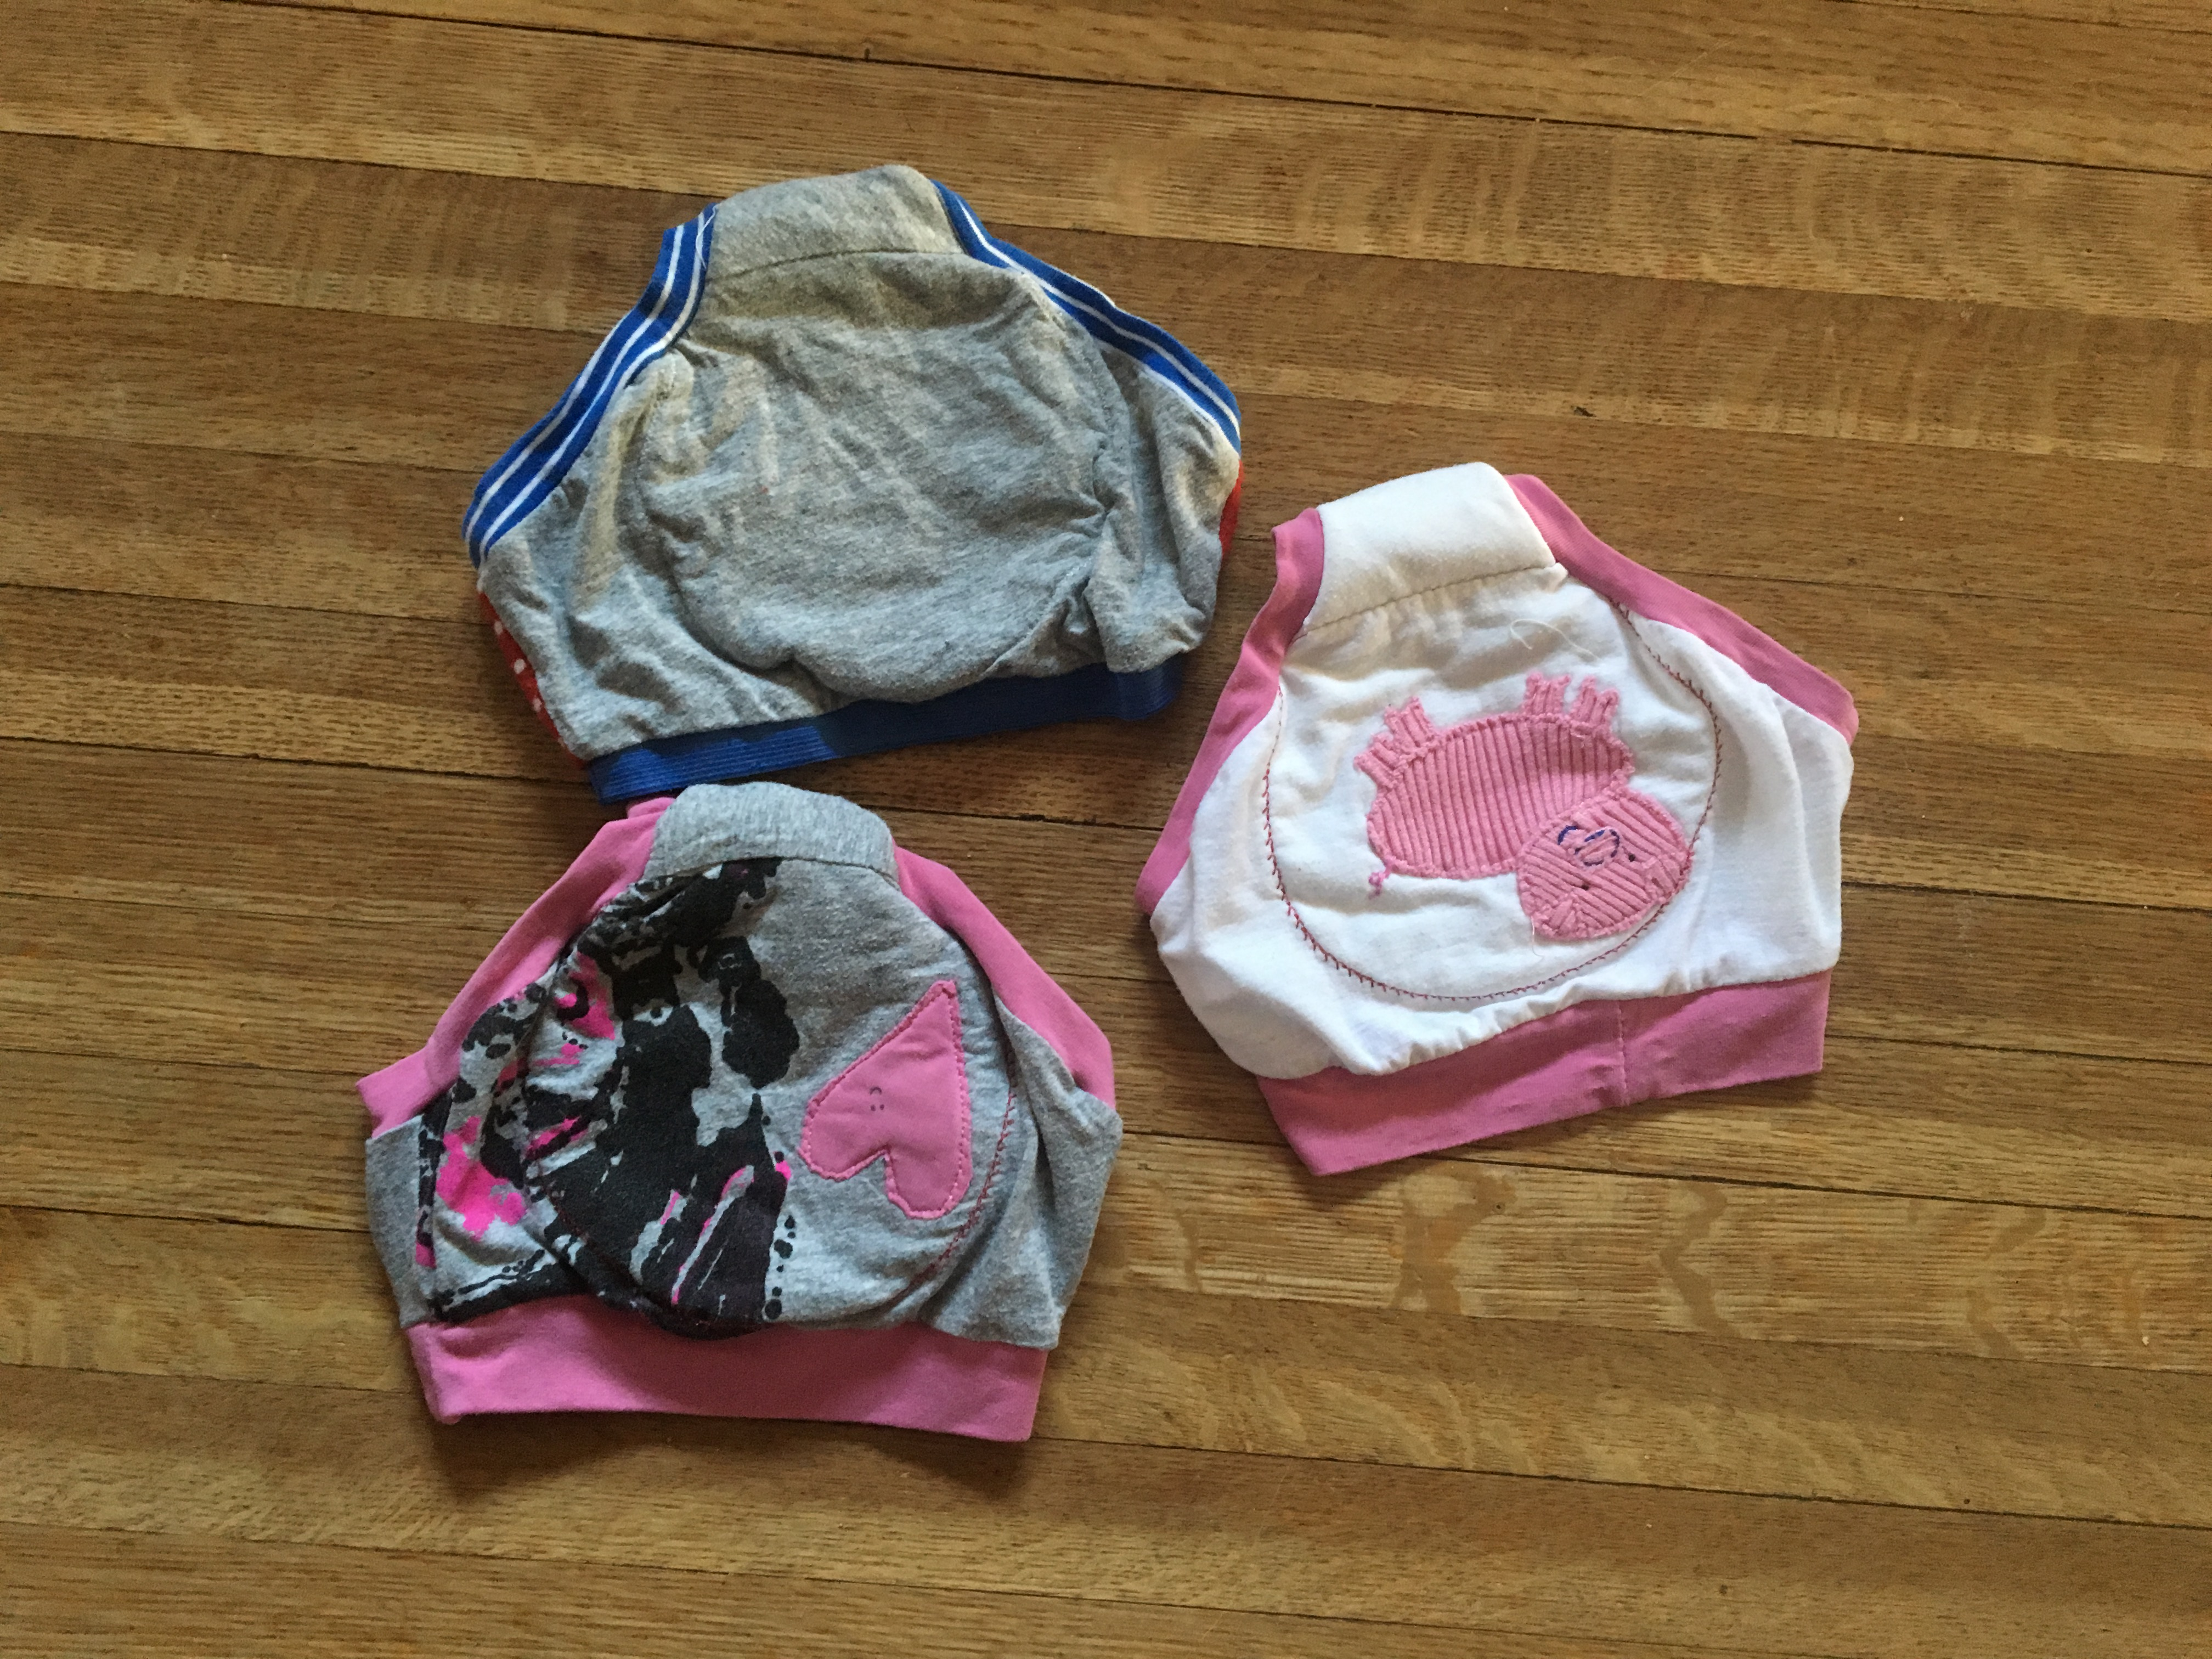 three pairs of toddler underwear: white with pink pig, grey with blue bands, and grey with pink heart